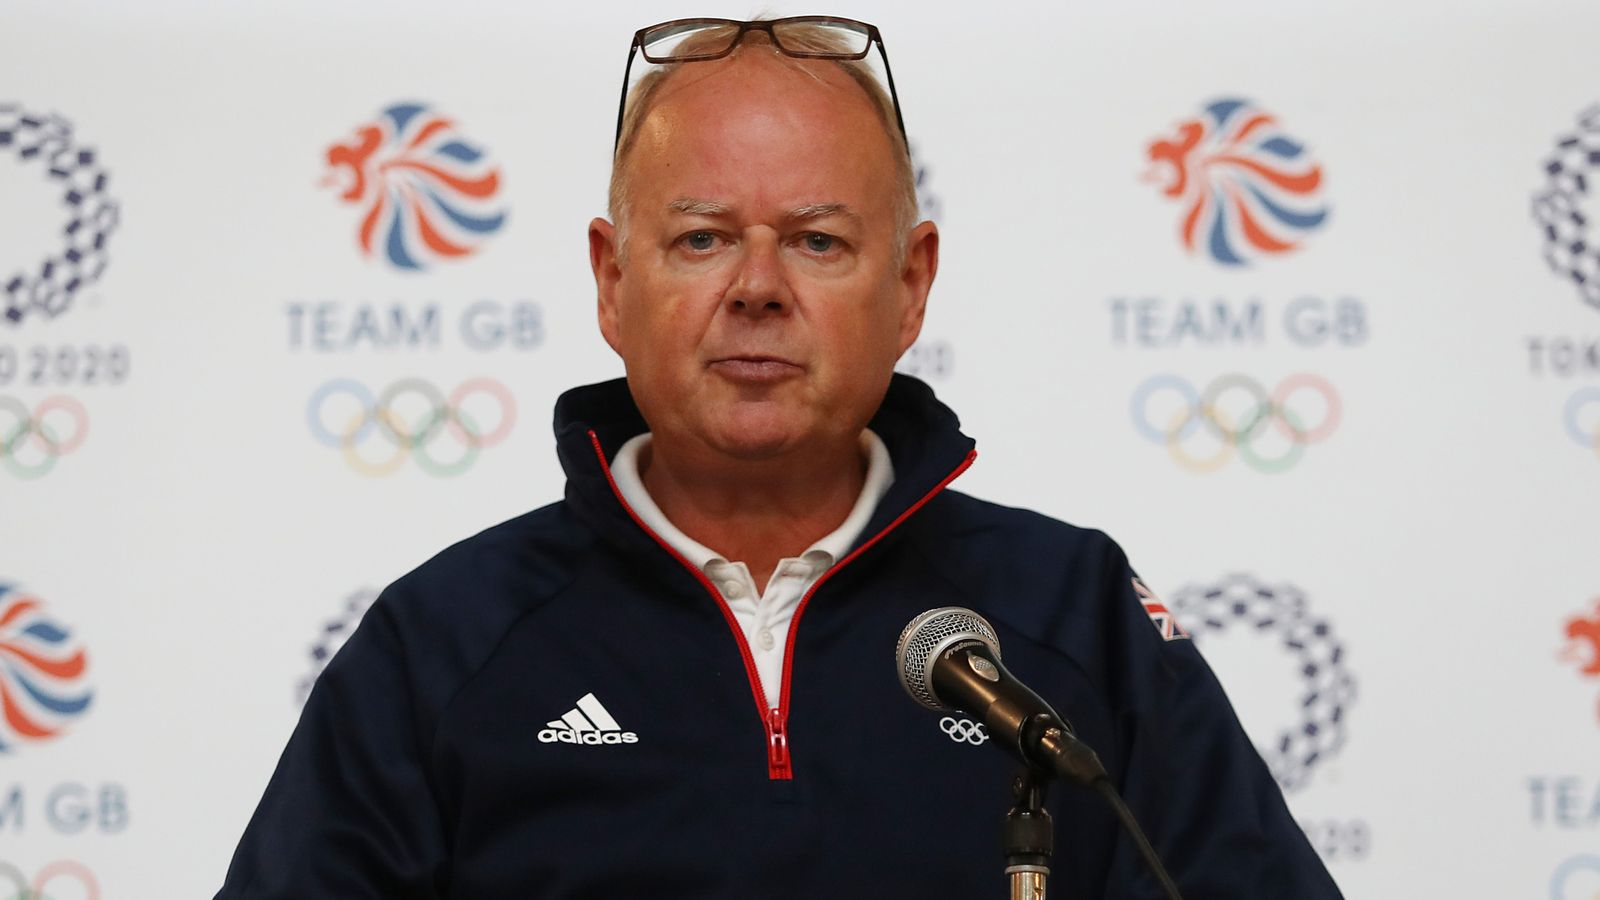 Black Lives Matter: Team GB athletes will be backed if they take knee at Tokyo Olympics | Olympics News